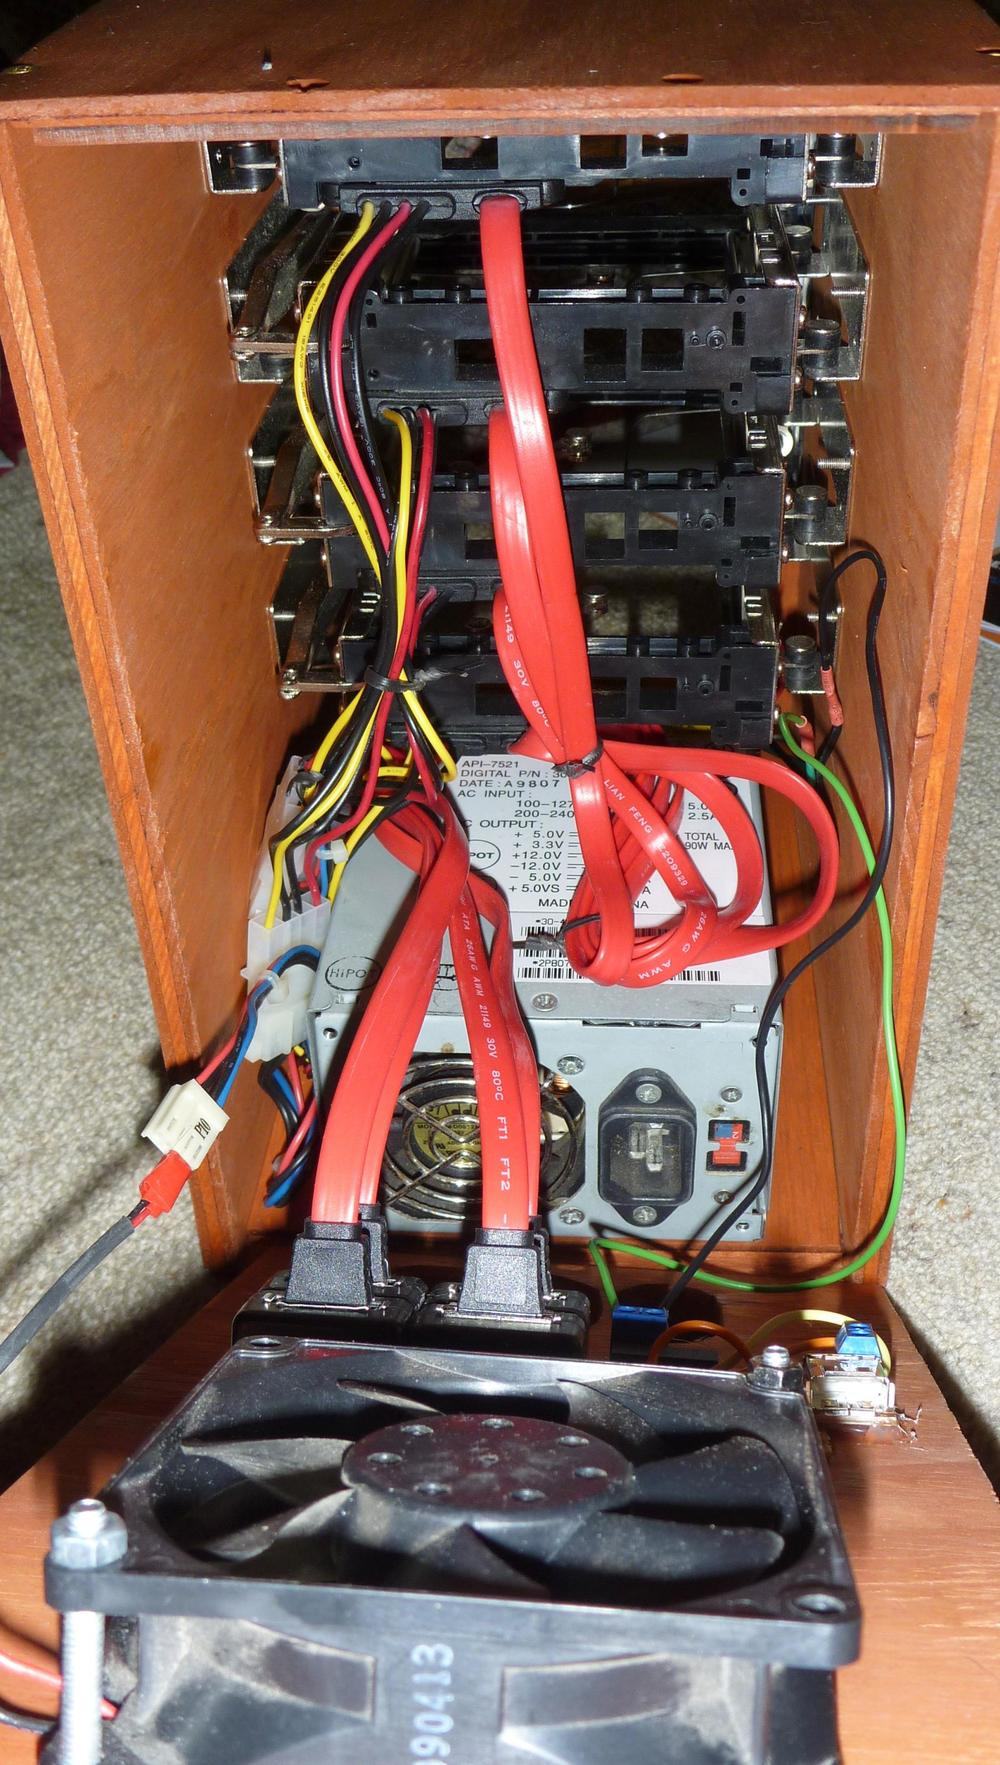 25-inside_just_before_final_assembly_straigt_angle.jpg